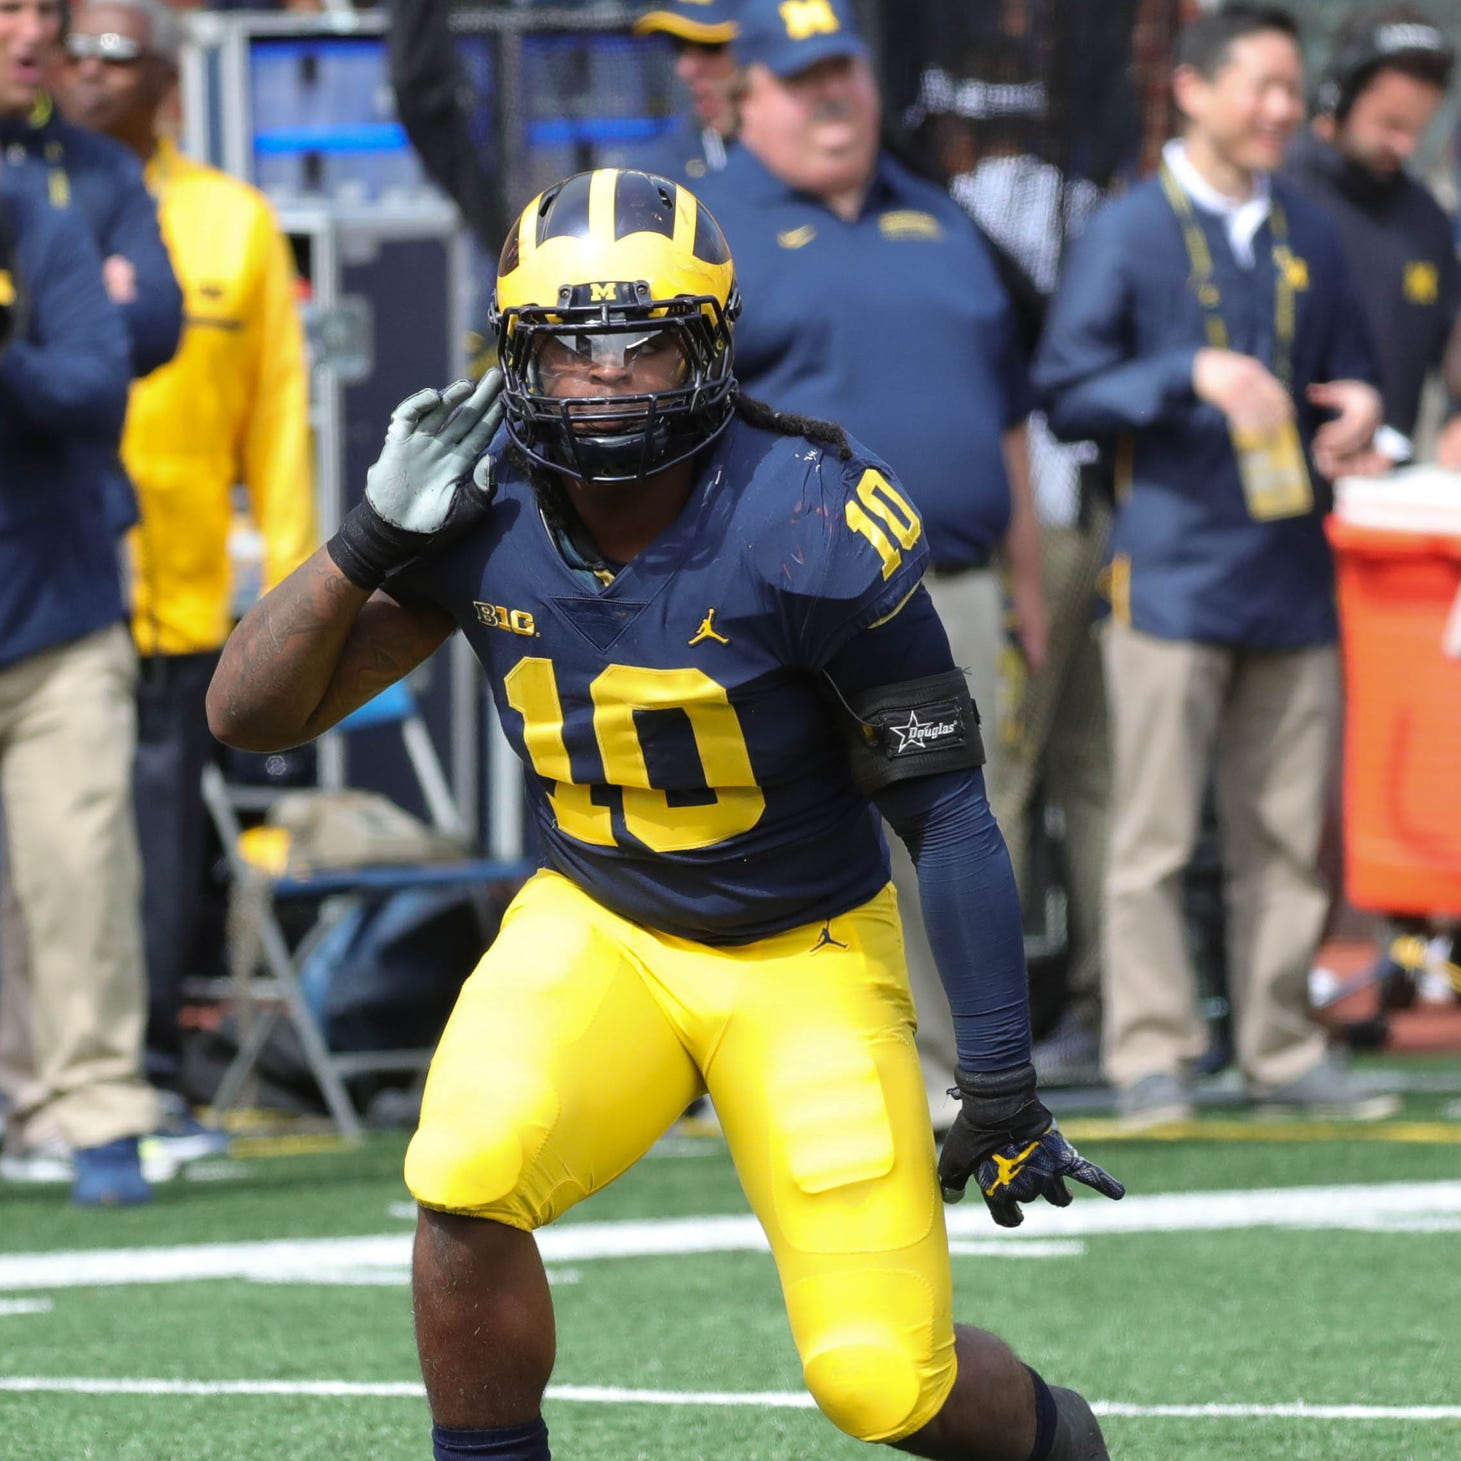 Michigan football film study: Devin Bush Jr. playing out of his mind